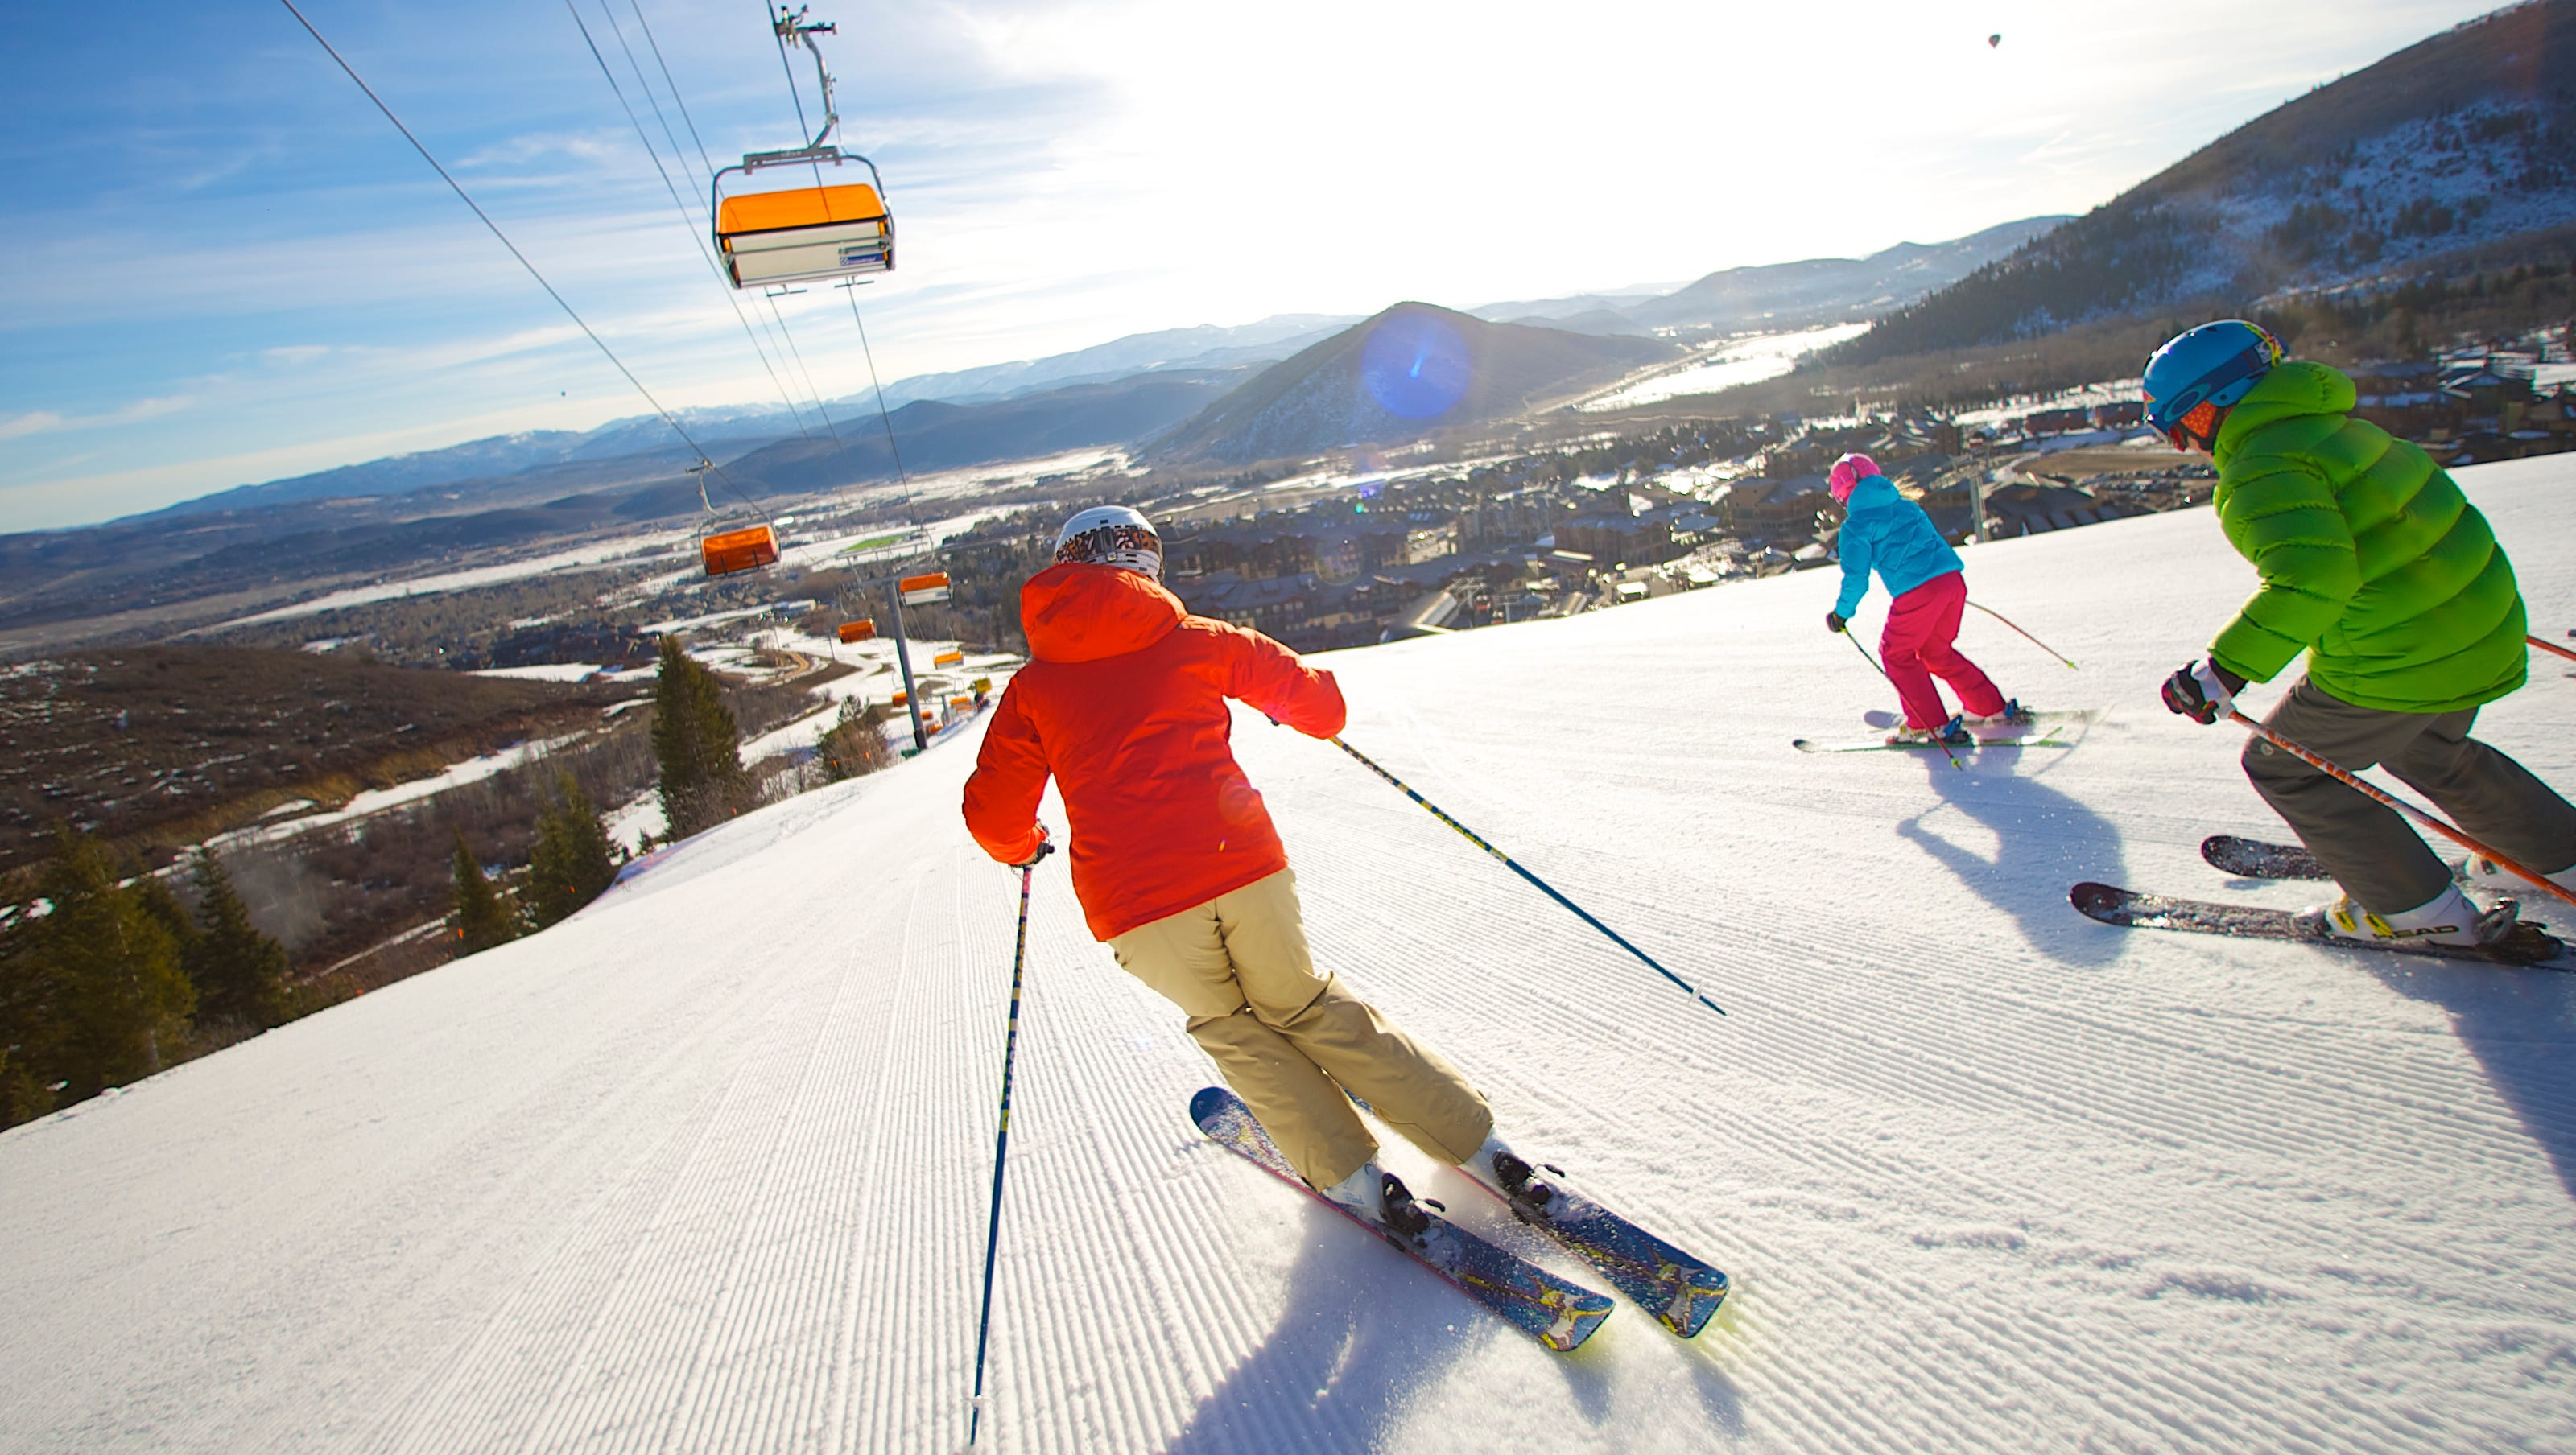 bigger and better: park city expands into usa's largest ski resort